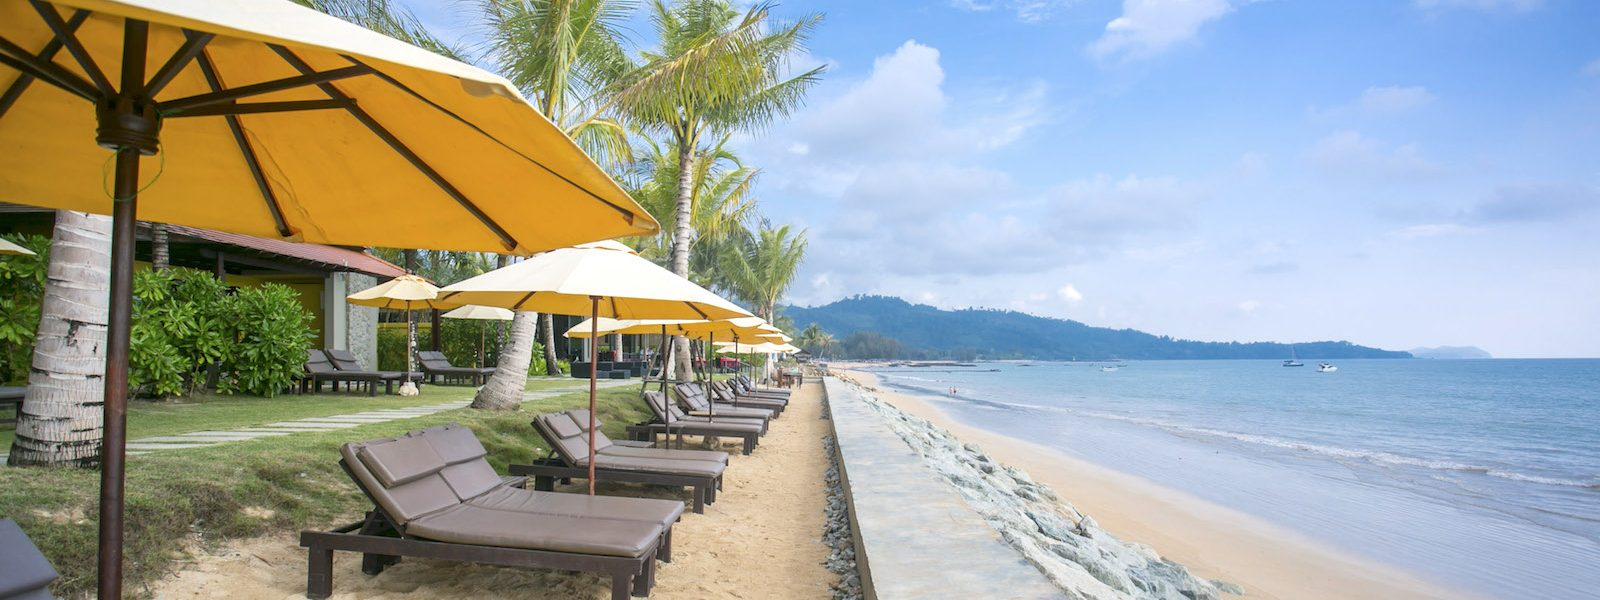 Chongfah Resort Khao Lak - Overview